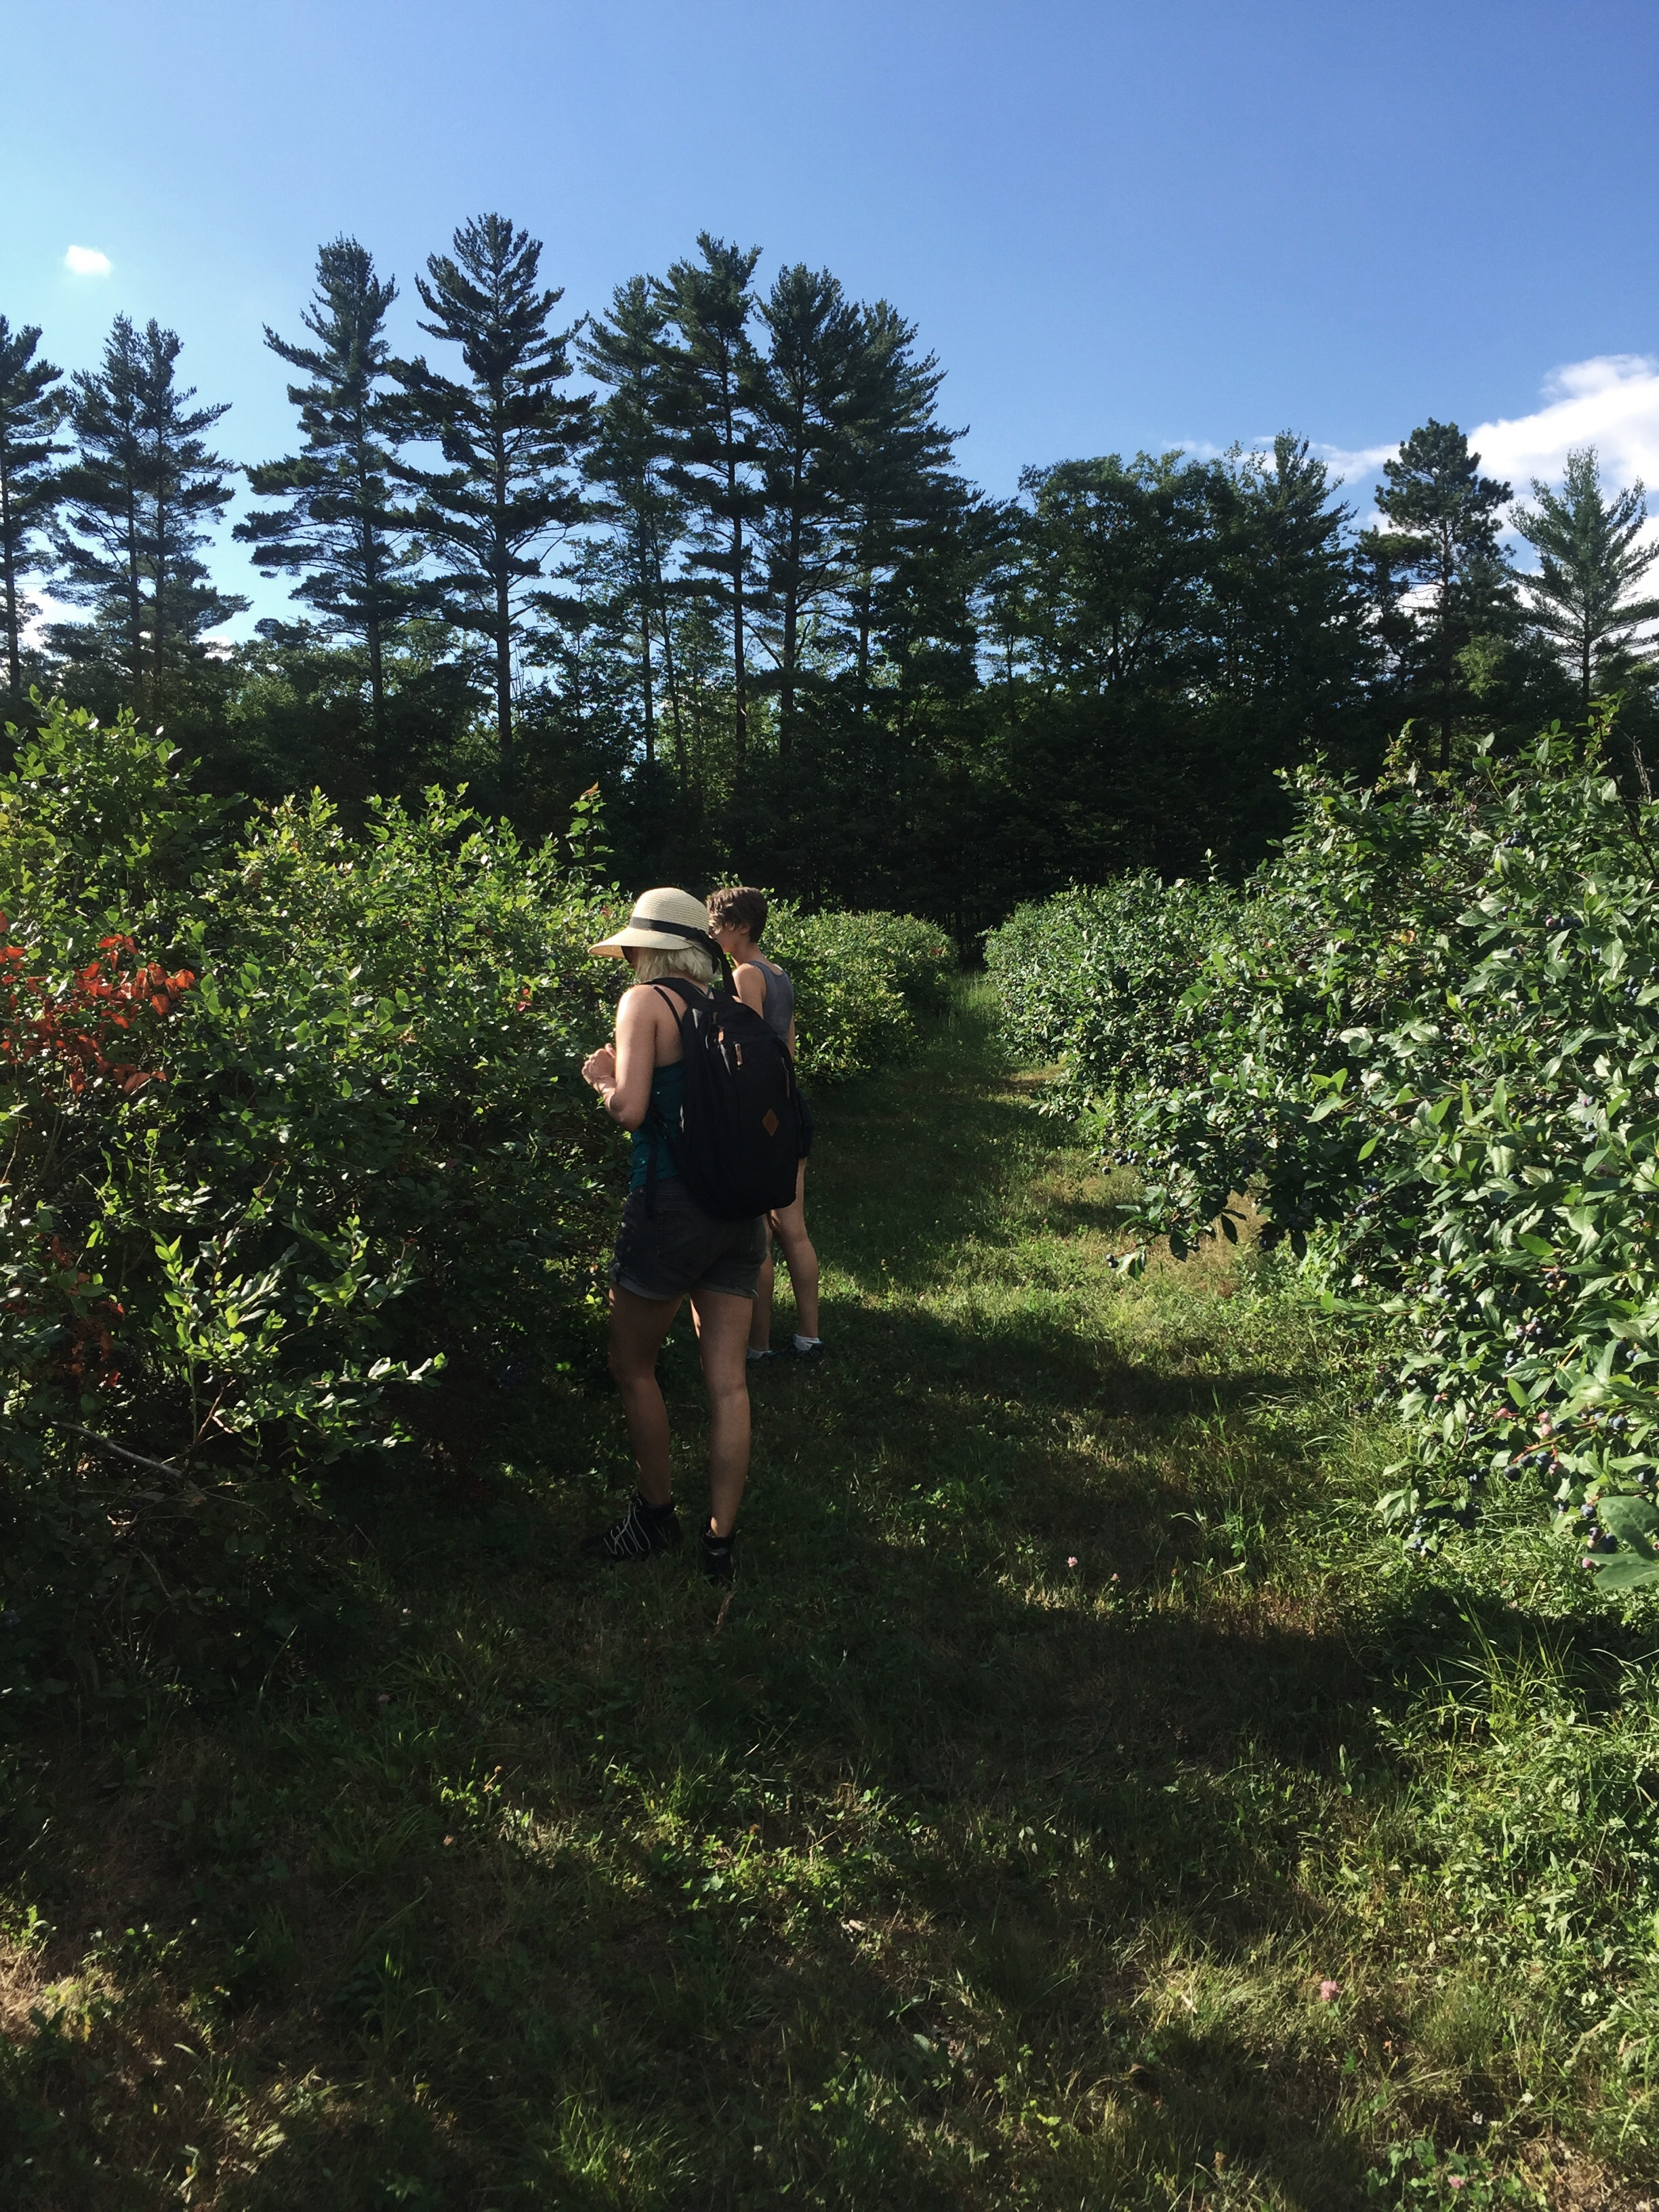 Picking blueberries at the blueberry patch!